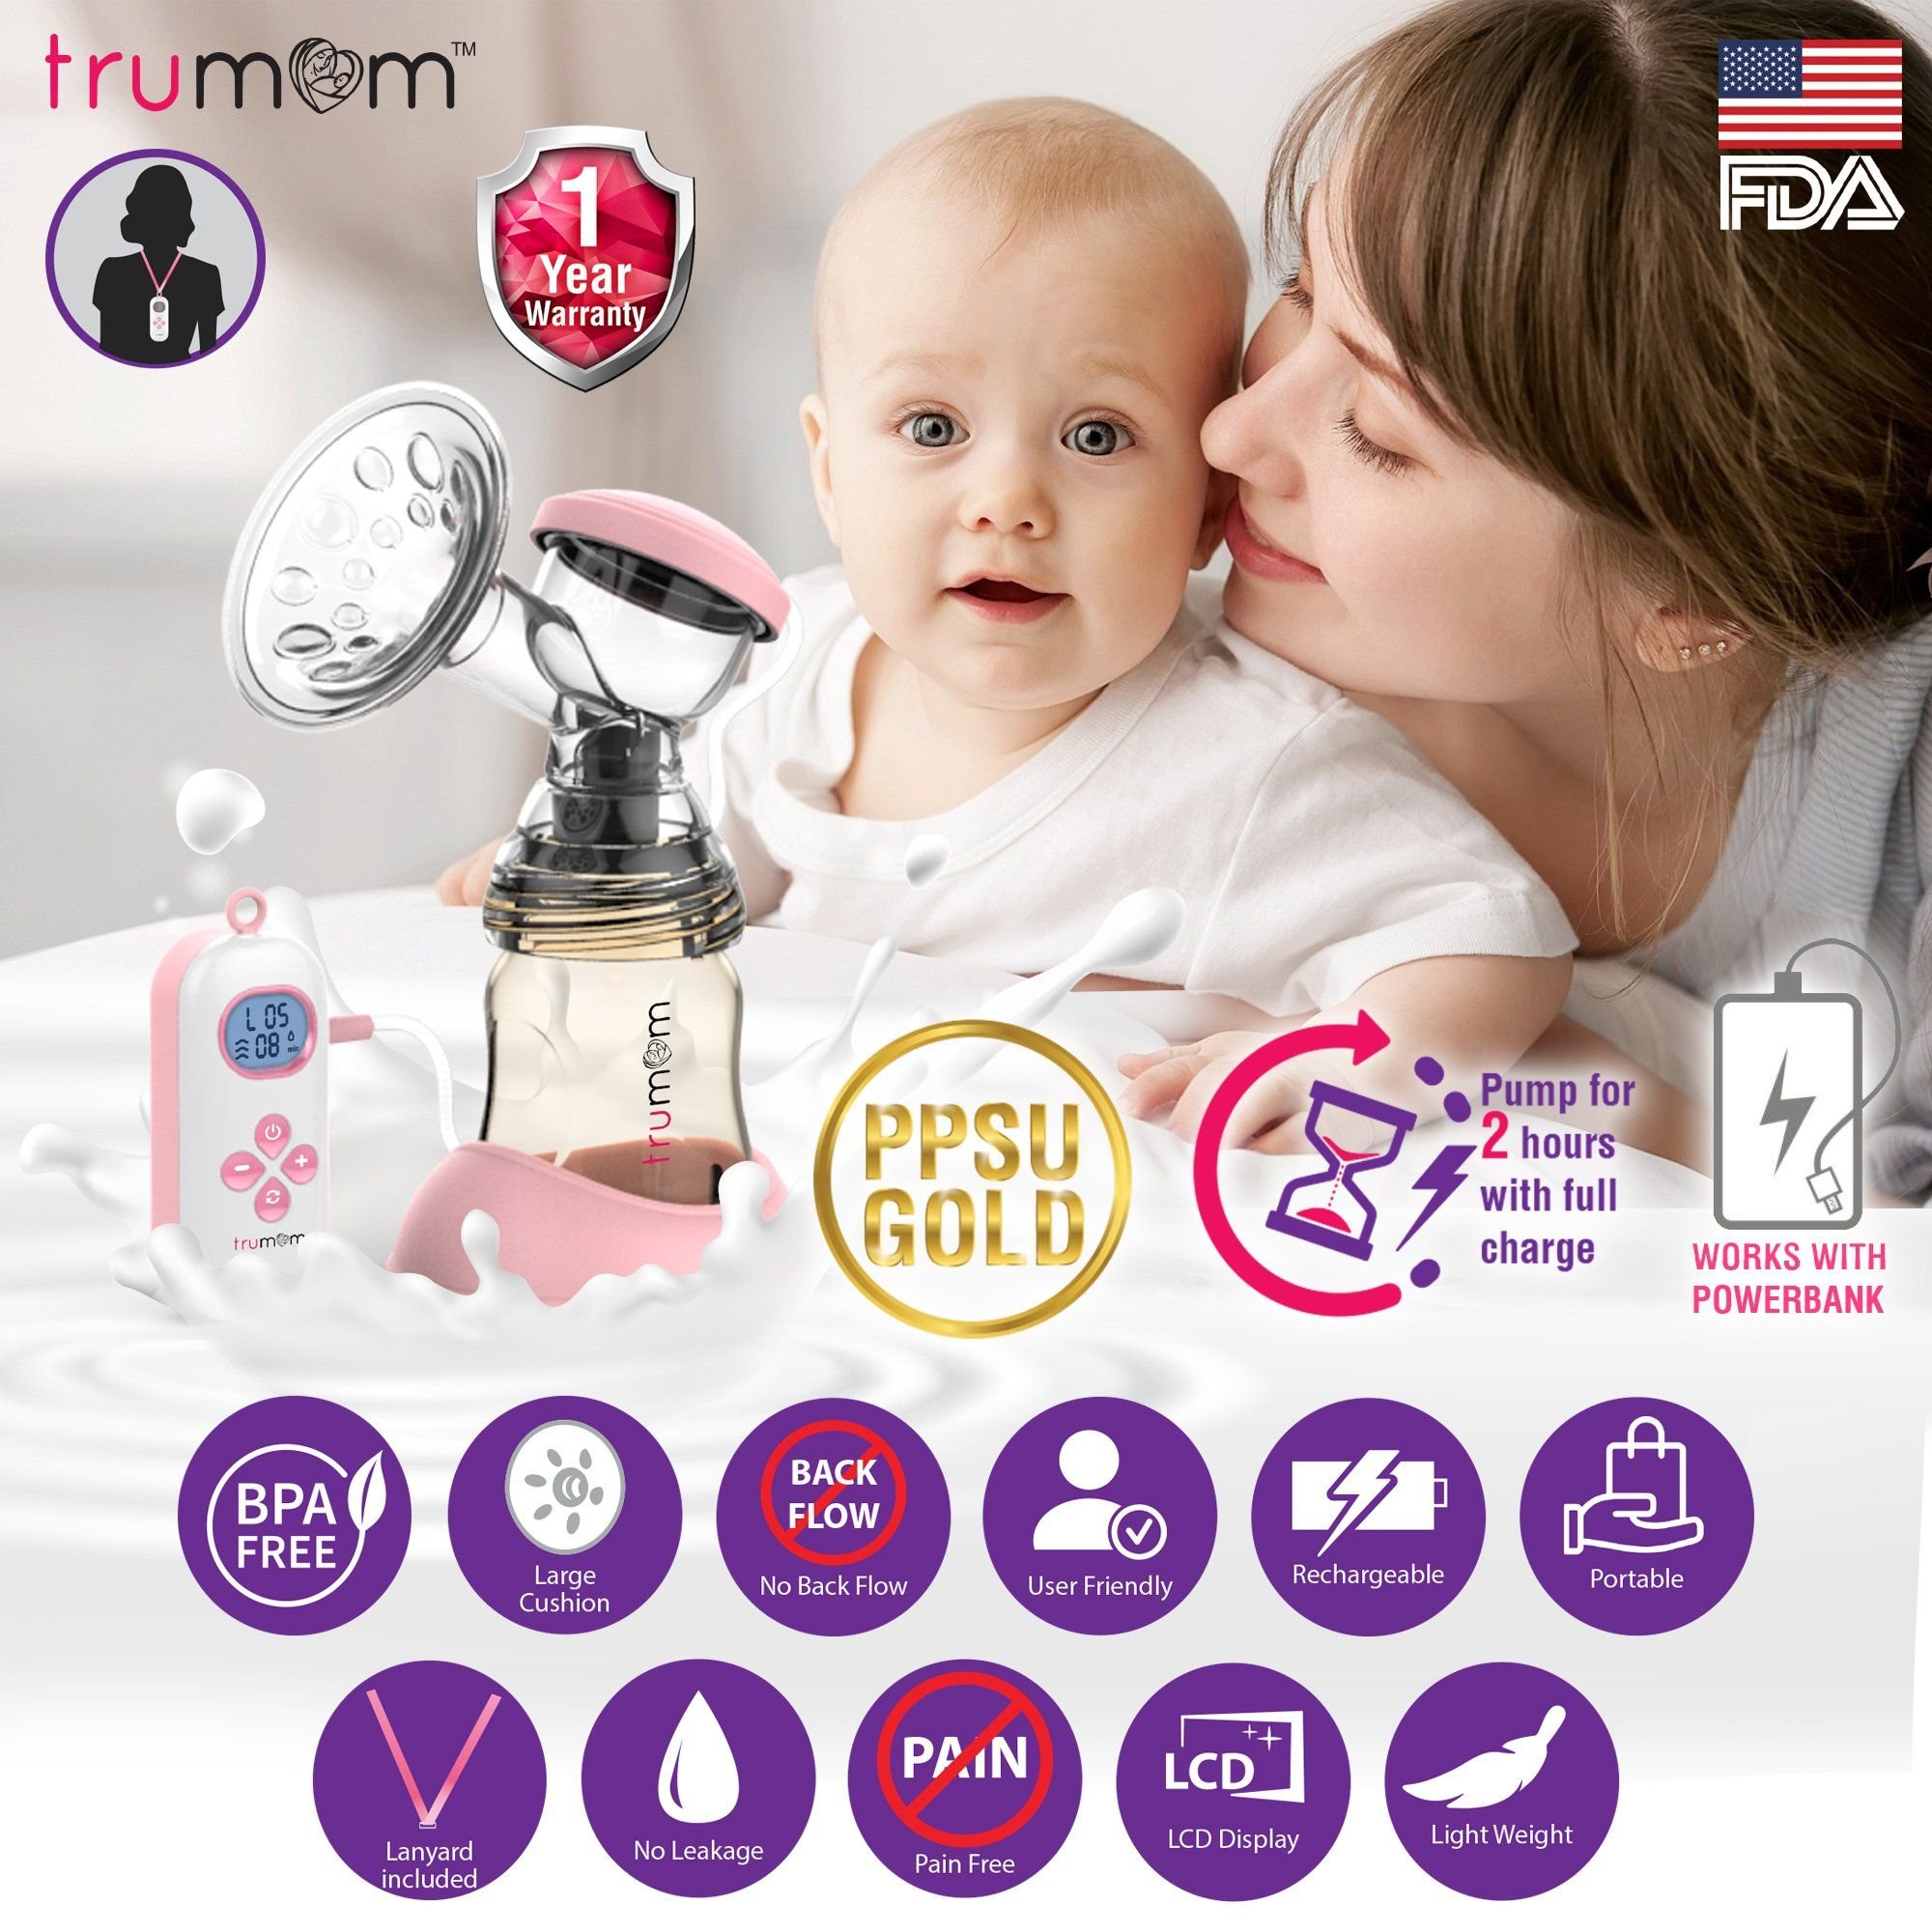 TRUMOM (USA) Electric Breast Pump Recharge PPSU Gold - trumom